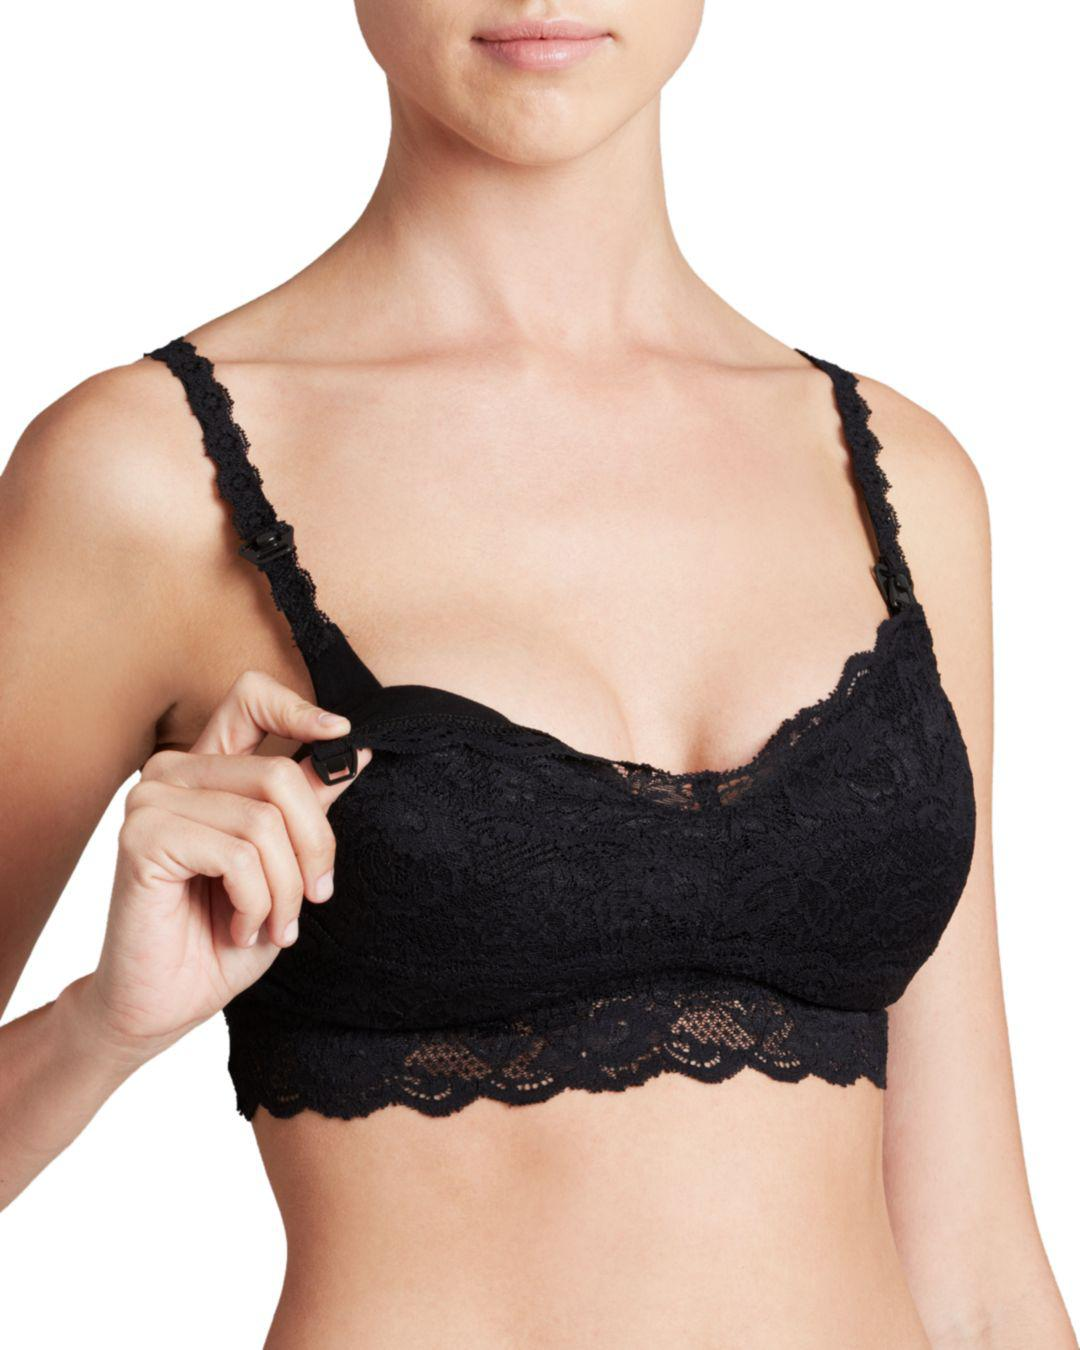 7cad2ac07 Lyst - Cosabella Never Say Never Mommie Maternity Bra in Black